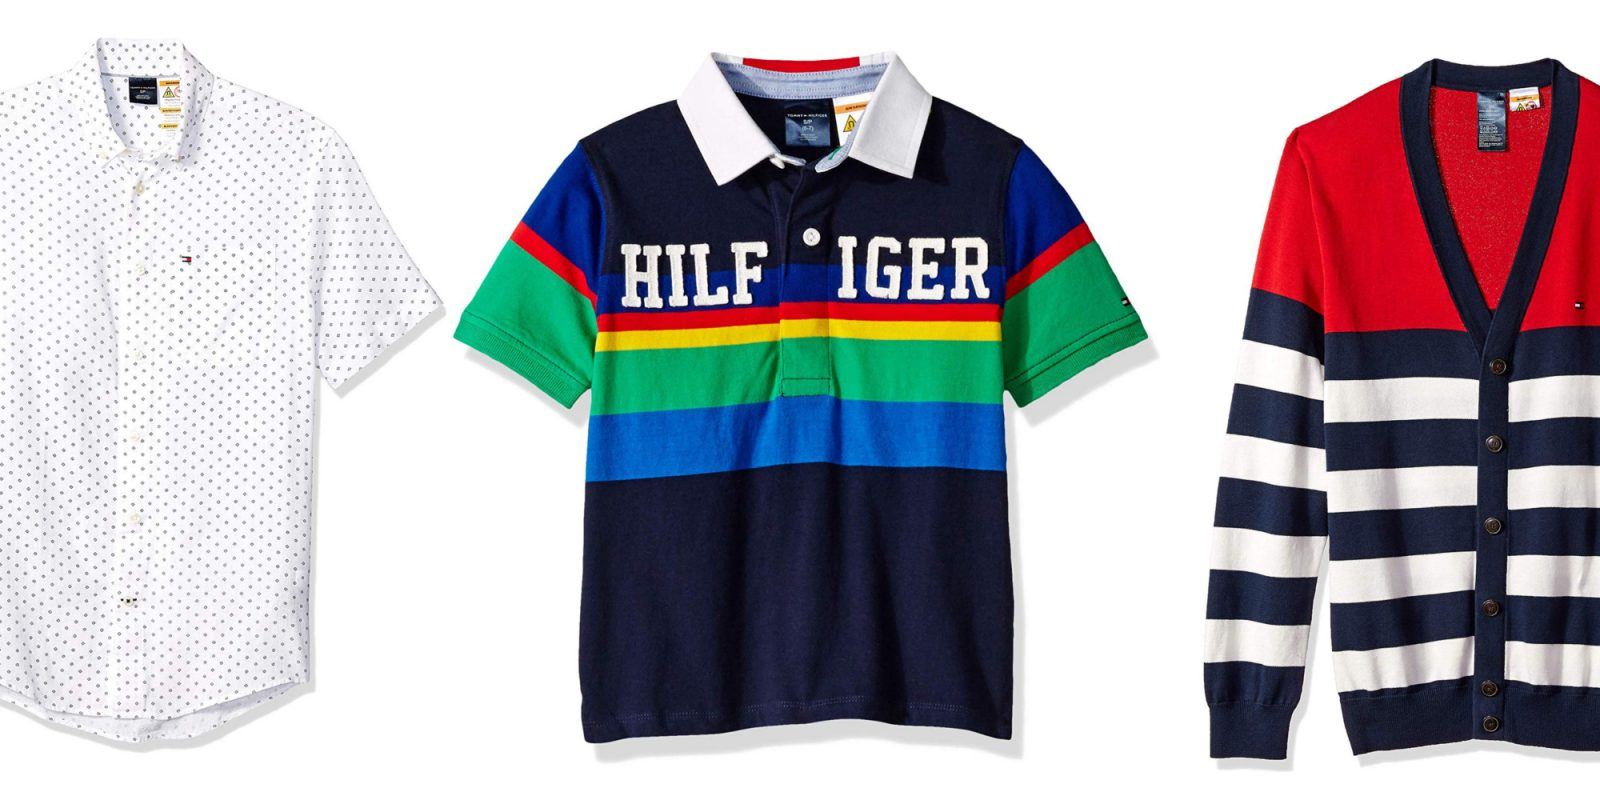 Tommy Hilfiger Adaptive apparel up to 30% off: T-shirts, pants, more from $20